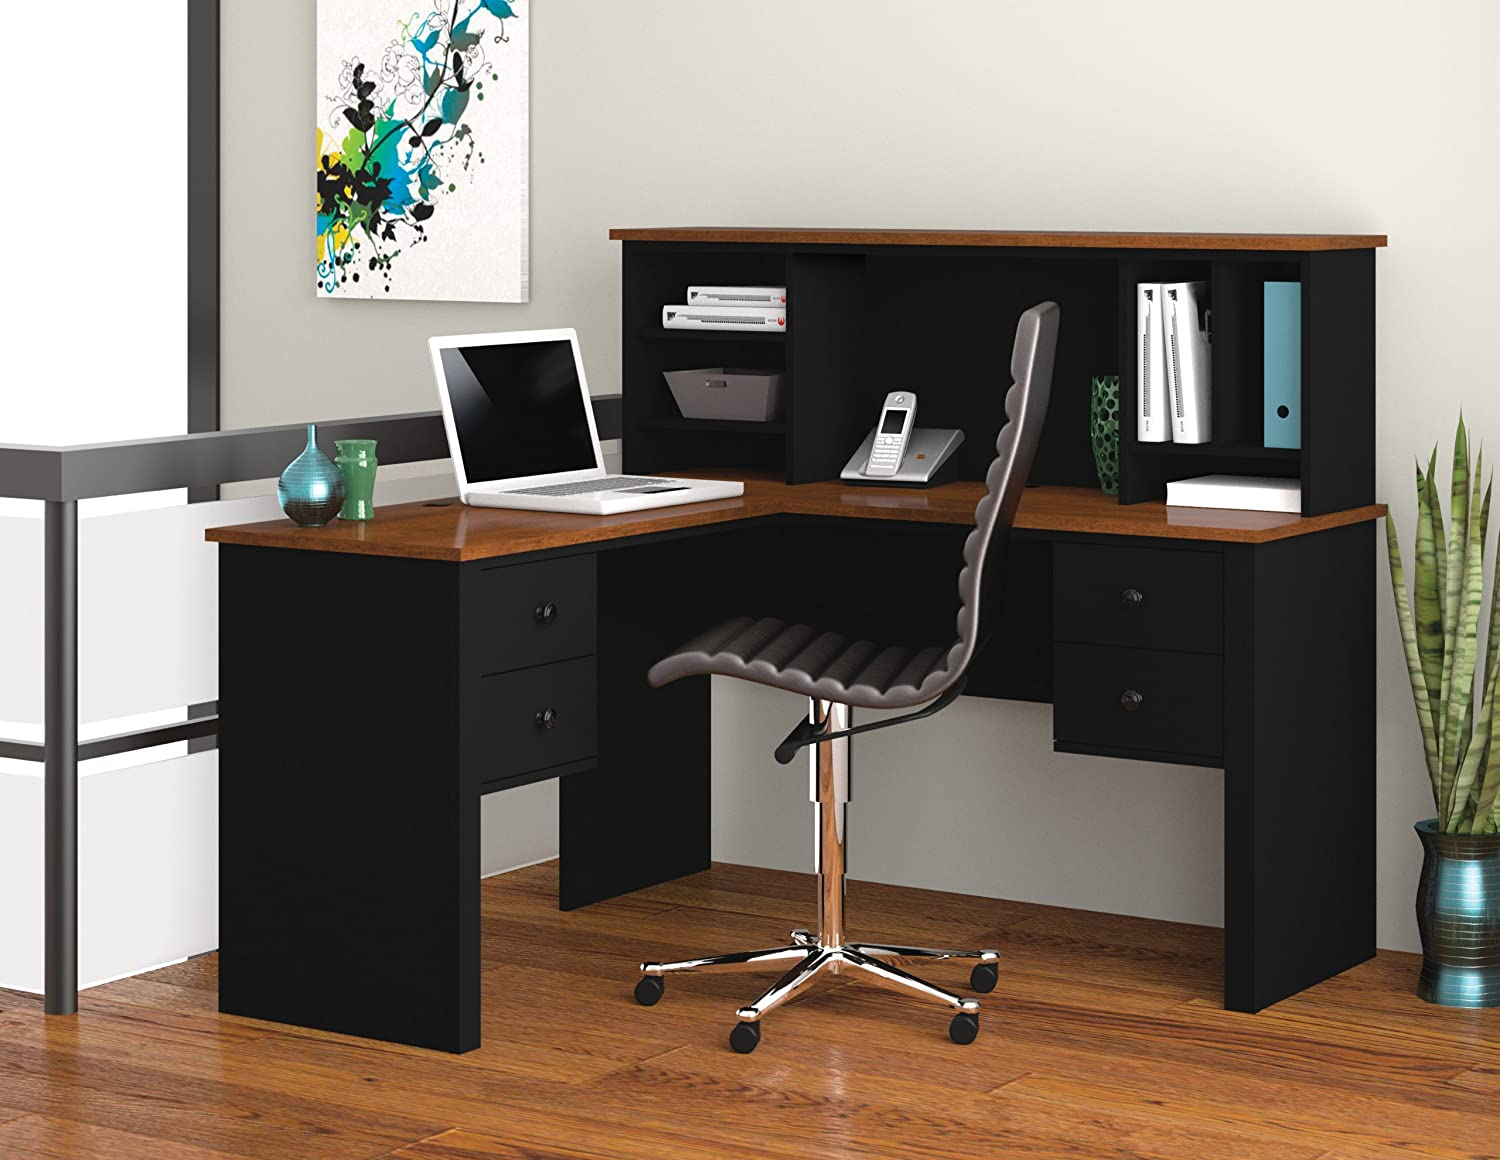 Charmant Amazon.com: Bestar Furniture 45850 18 Somerville L Shaped Desk With Hutch  Simple Pulls And Scratch Stain And Burn Resistant In Black And Tuscany:  Kitchen U0026 ...